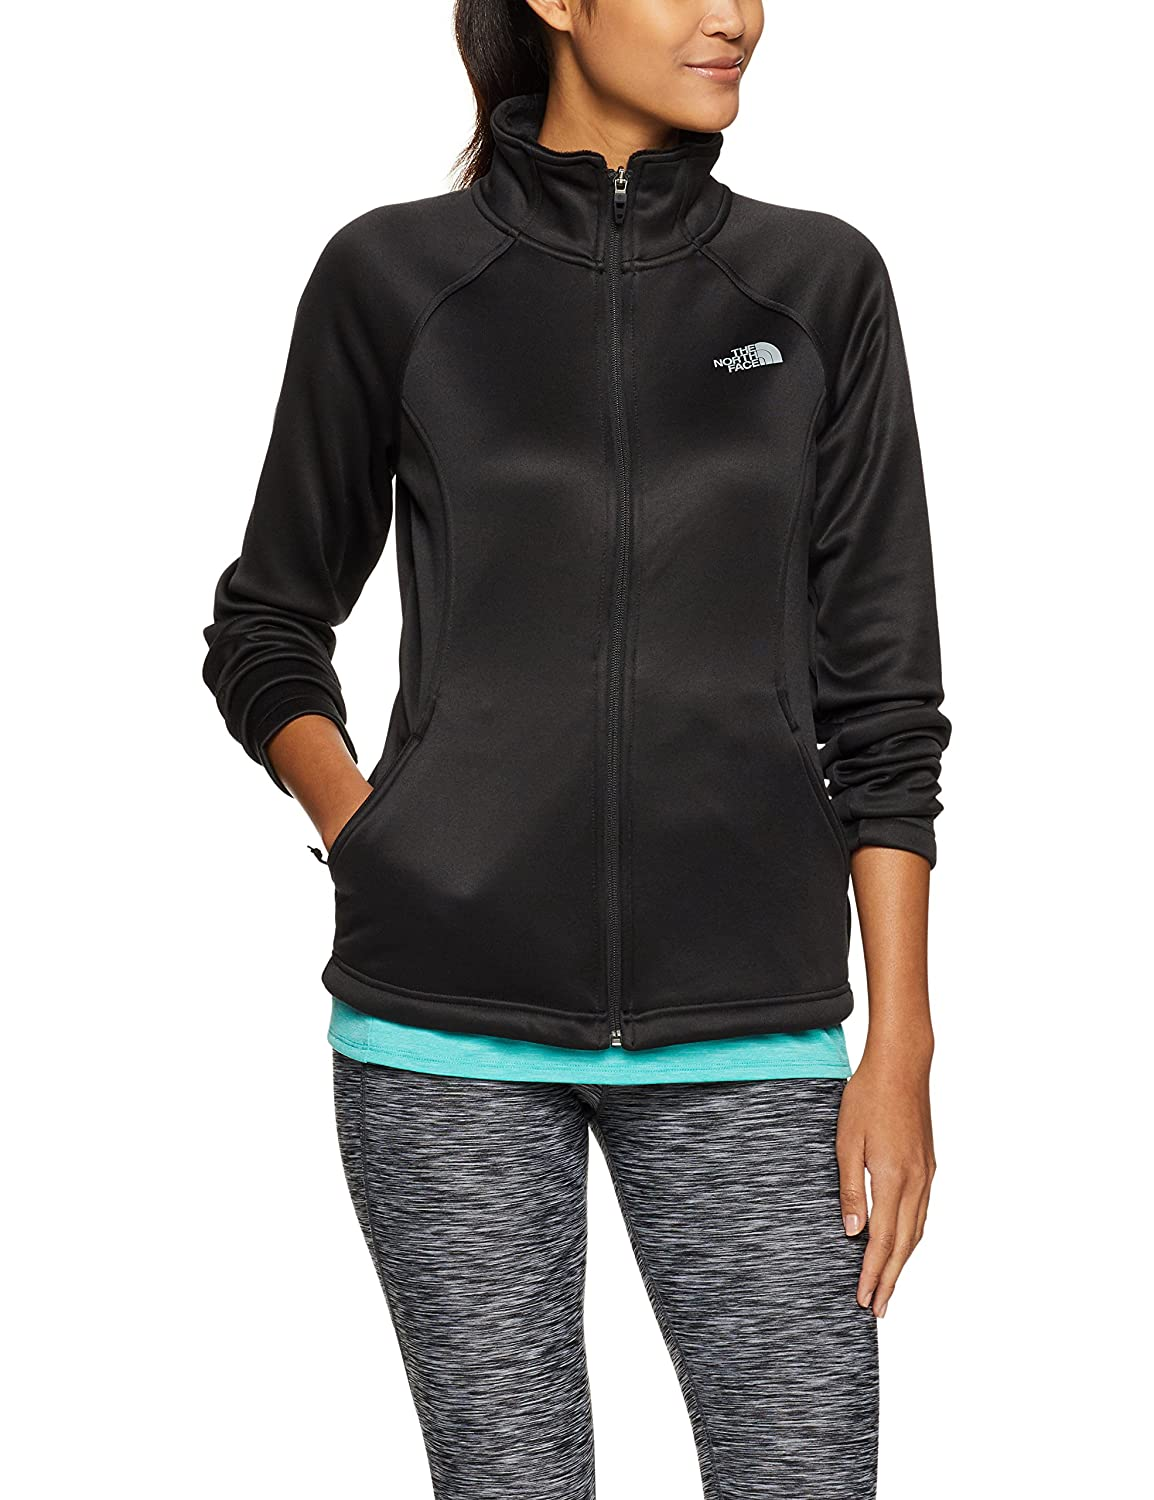 6926d8015 The North Face Womens Agave Full Zip Jacket: Amazon.co.uk: Sports ...